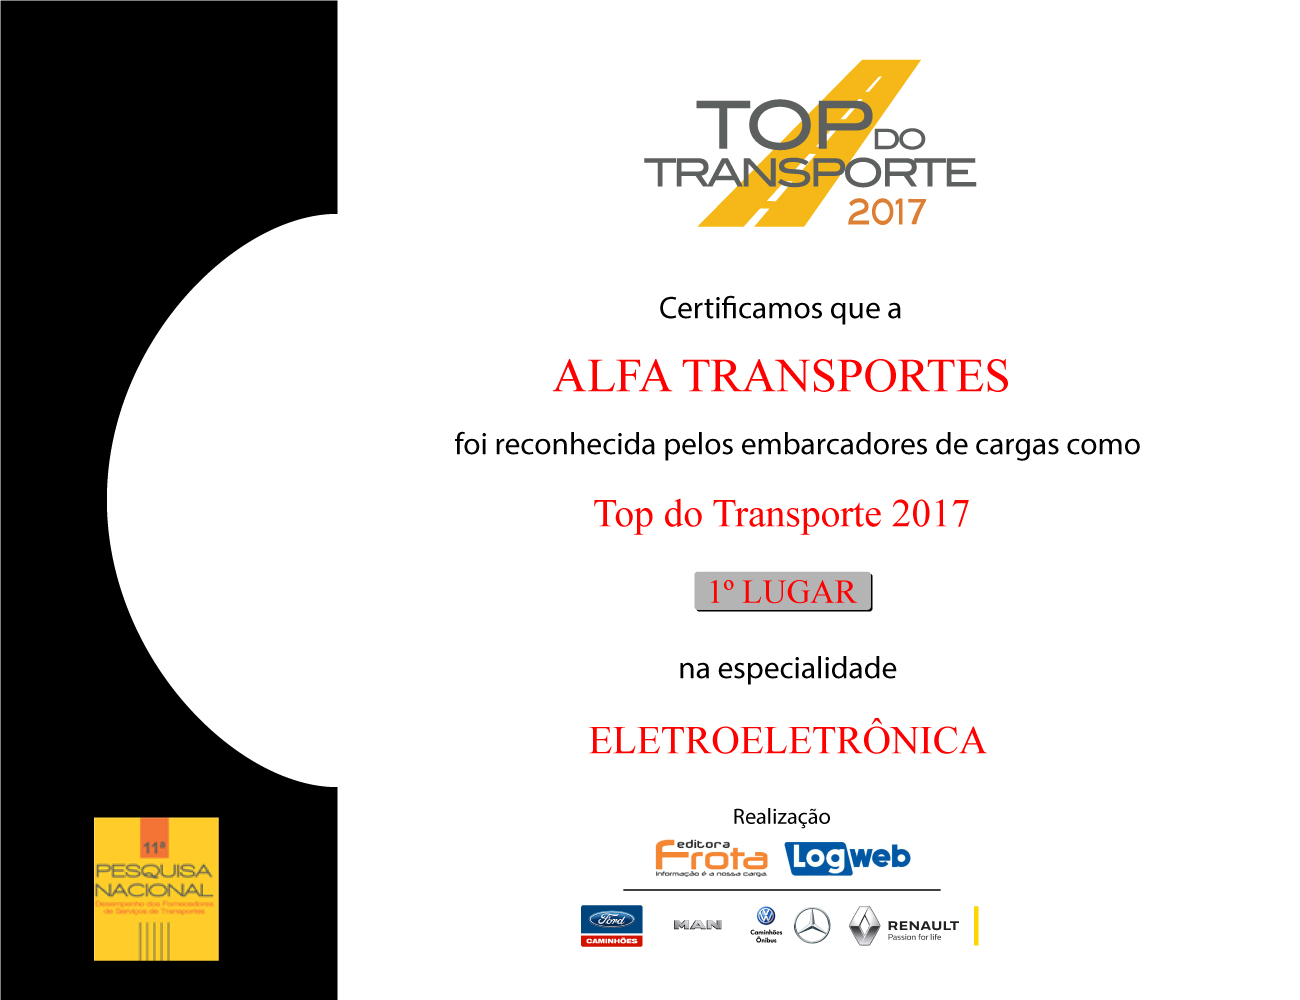 Premio Top do Transporte 2017